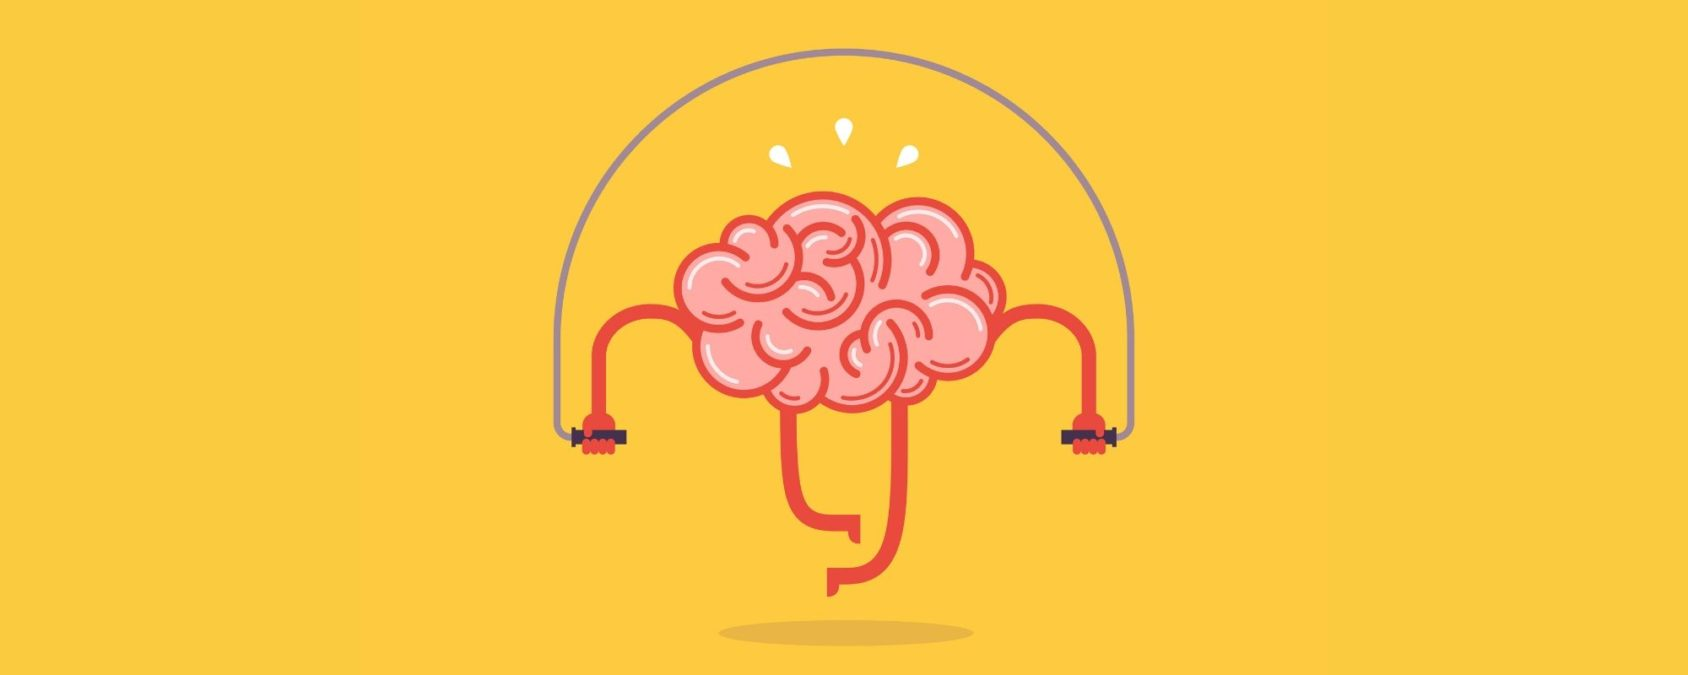 Down with brainstorming! Here are some fun ways to get creative